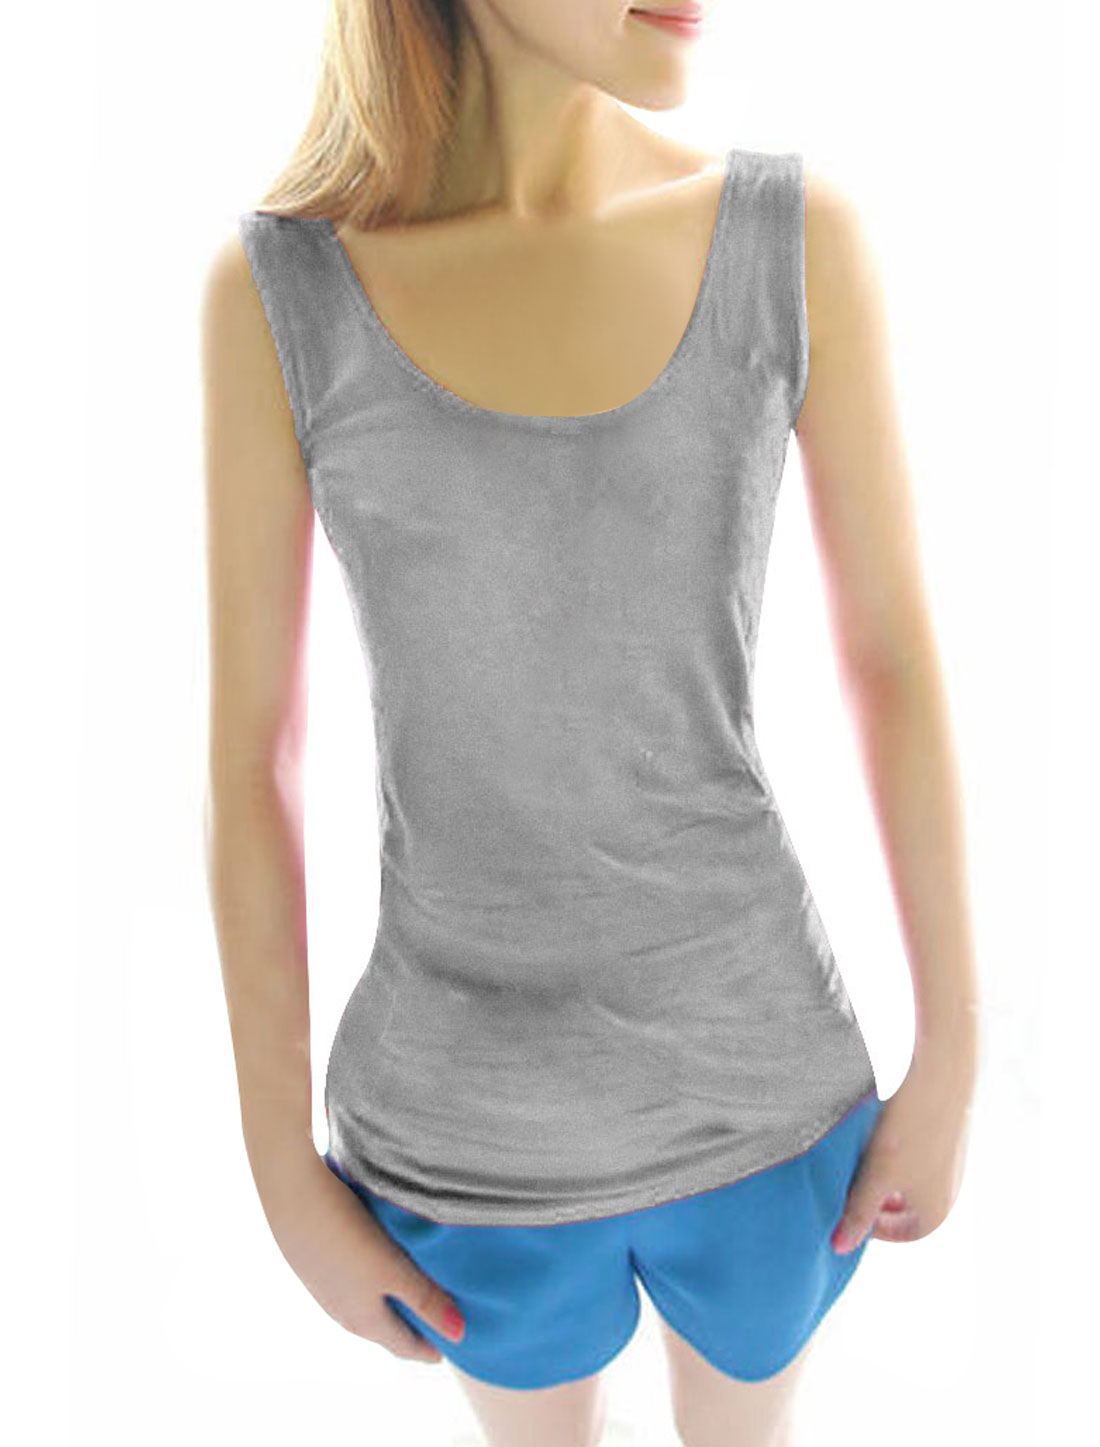 Woman Chic Scoop Neck Stretchy Slim Fit Light Gray Tank Tops XS